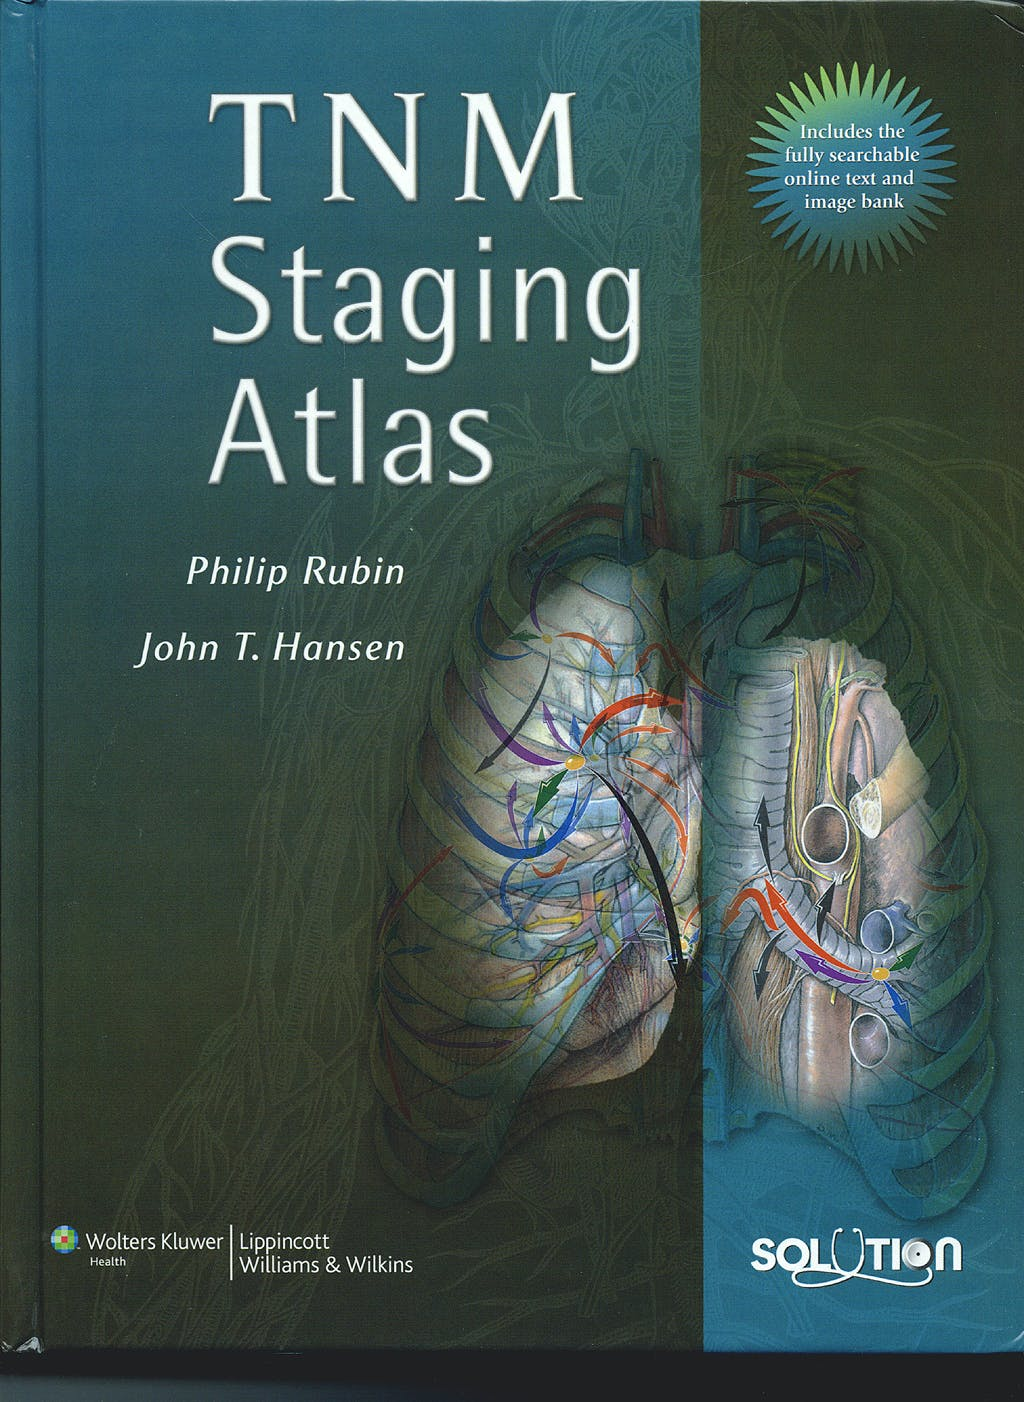 Portada del libro 9780781760218 TNM Staging Atlas